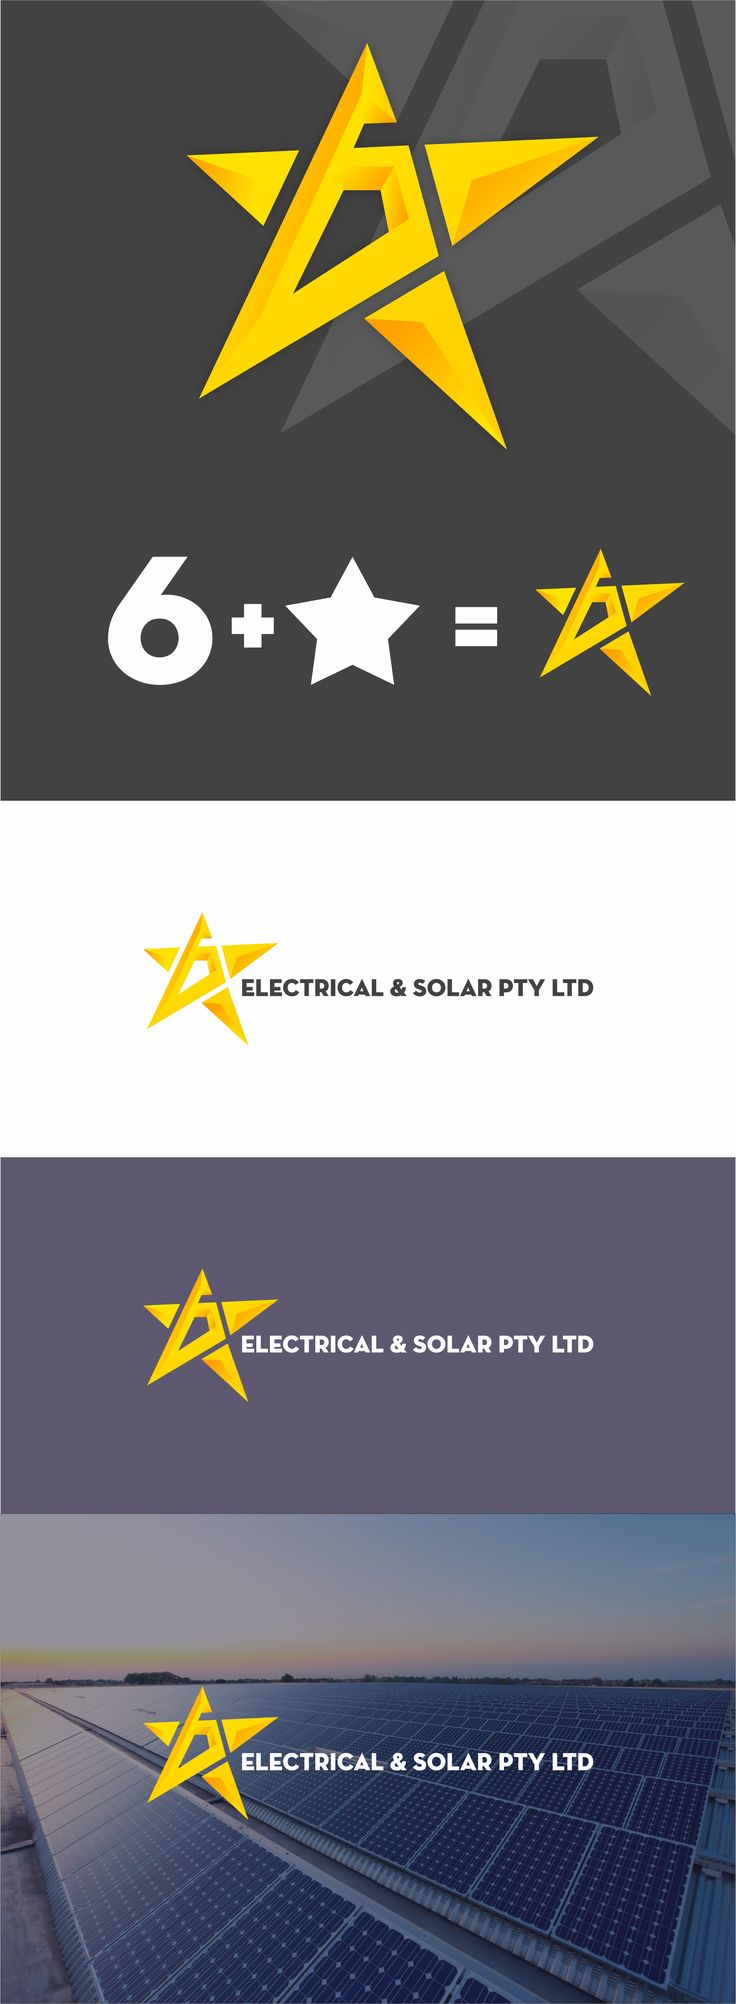 "Check out my @Behance project: ""Six Star logo design"" https://www.behance.net/gallery/54705121/Six-Star-logo-design"